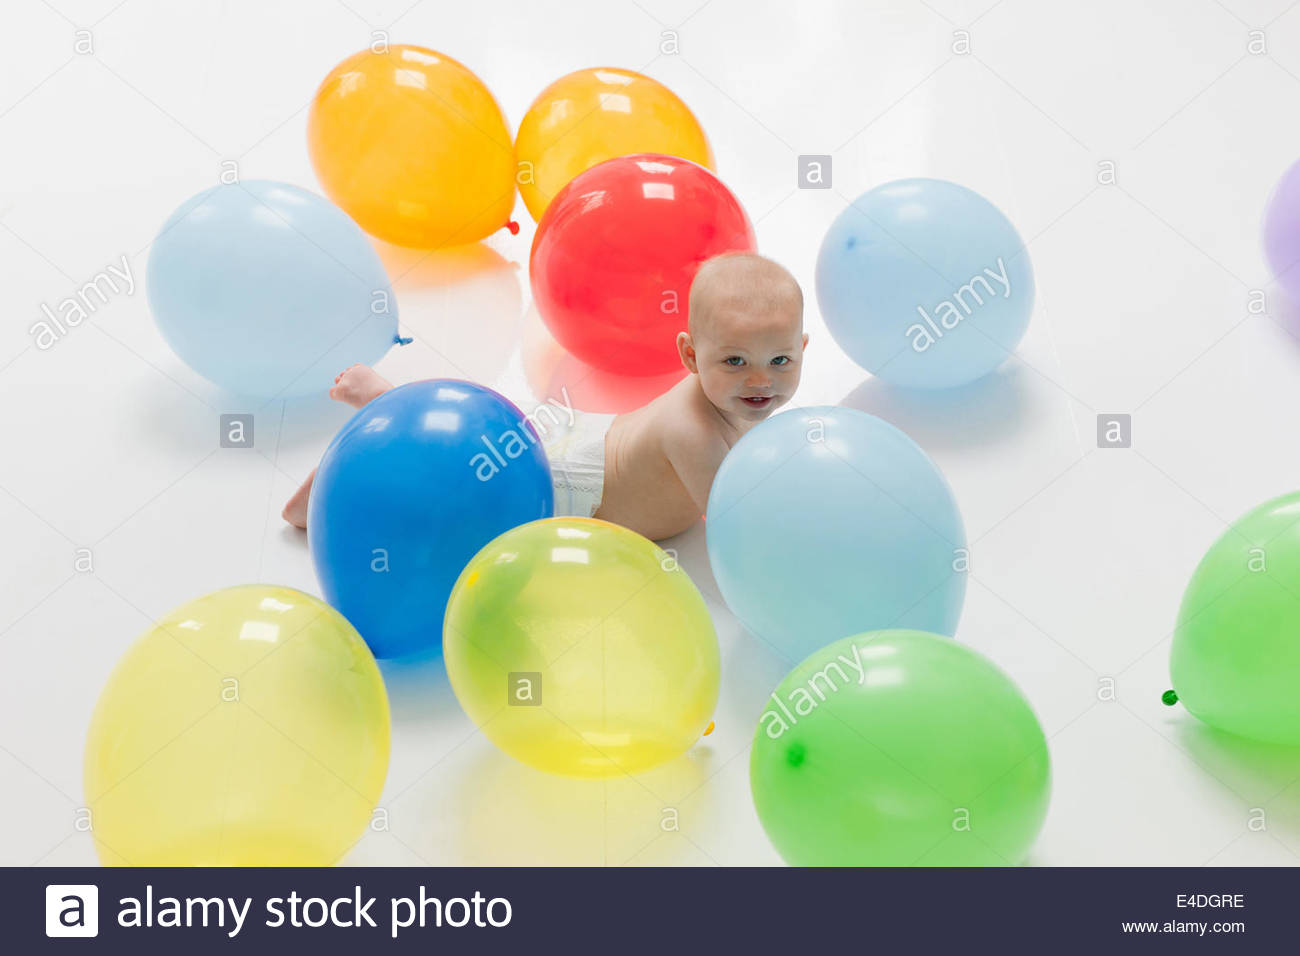 Baby laying on floor with balloons - Stock Image